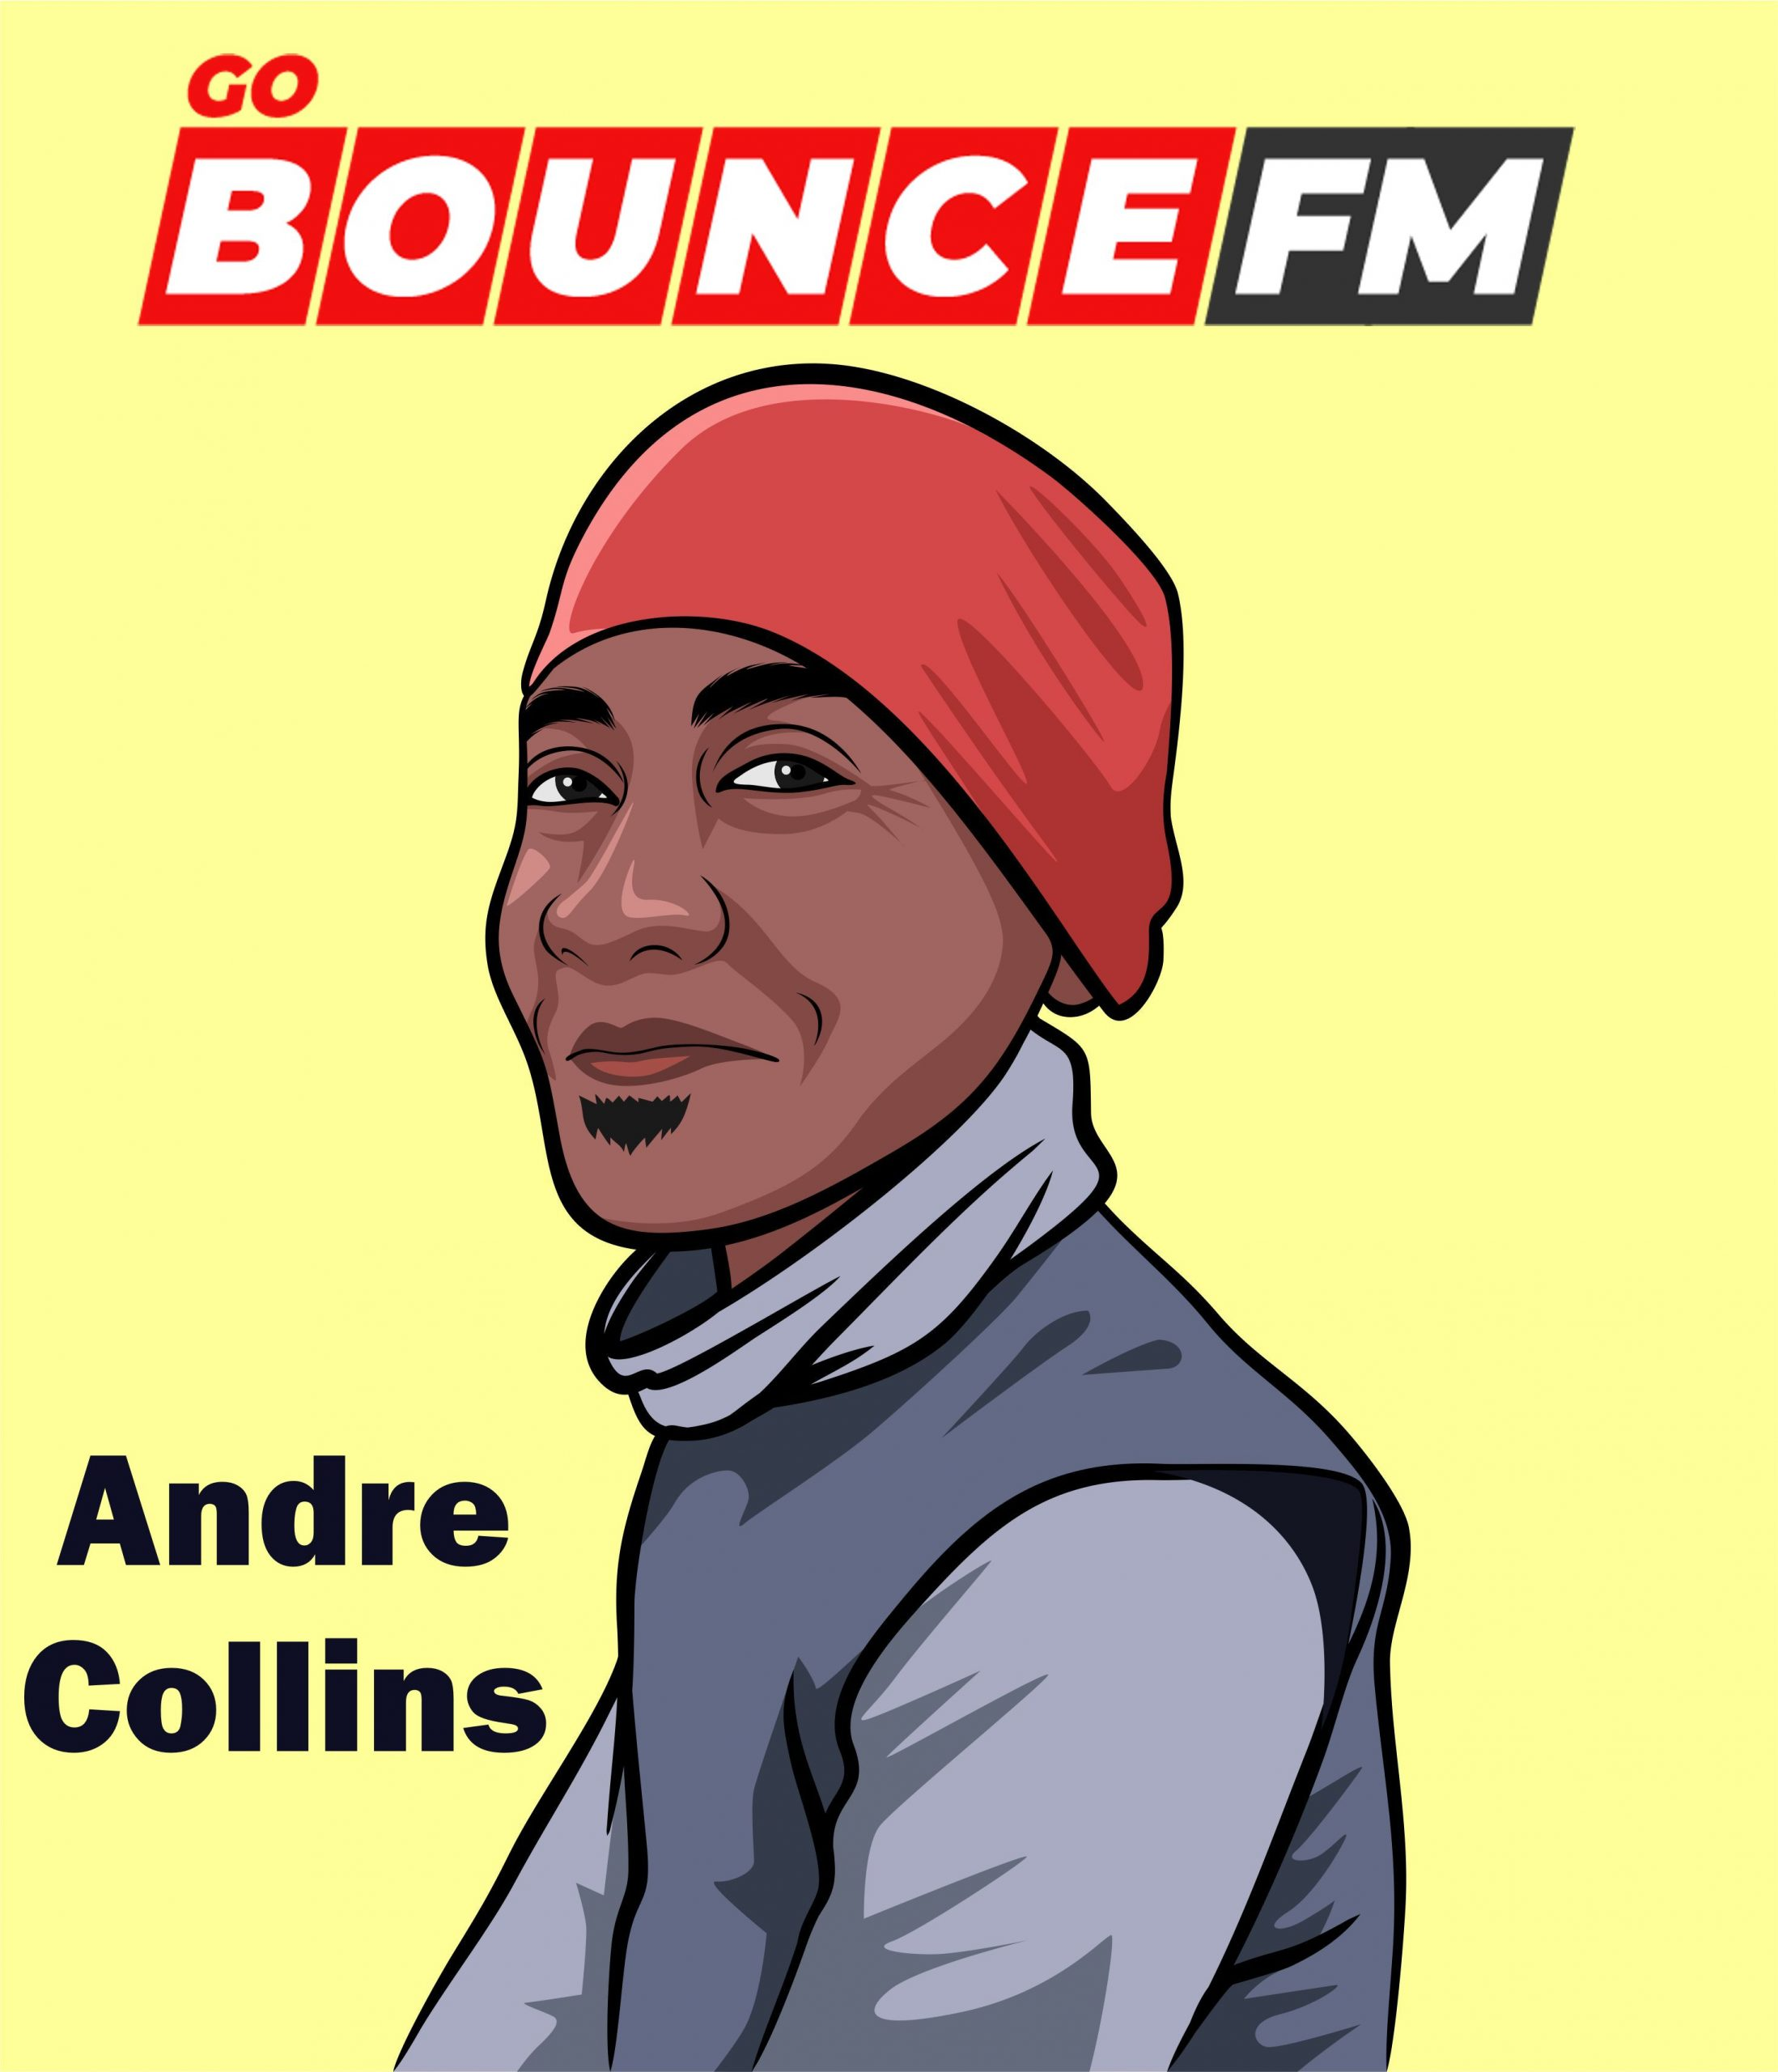 Andre Collins